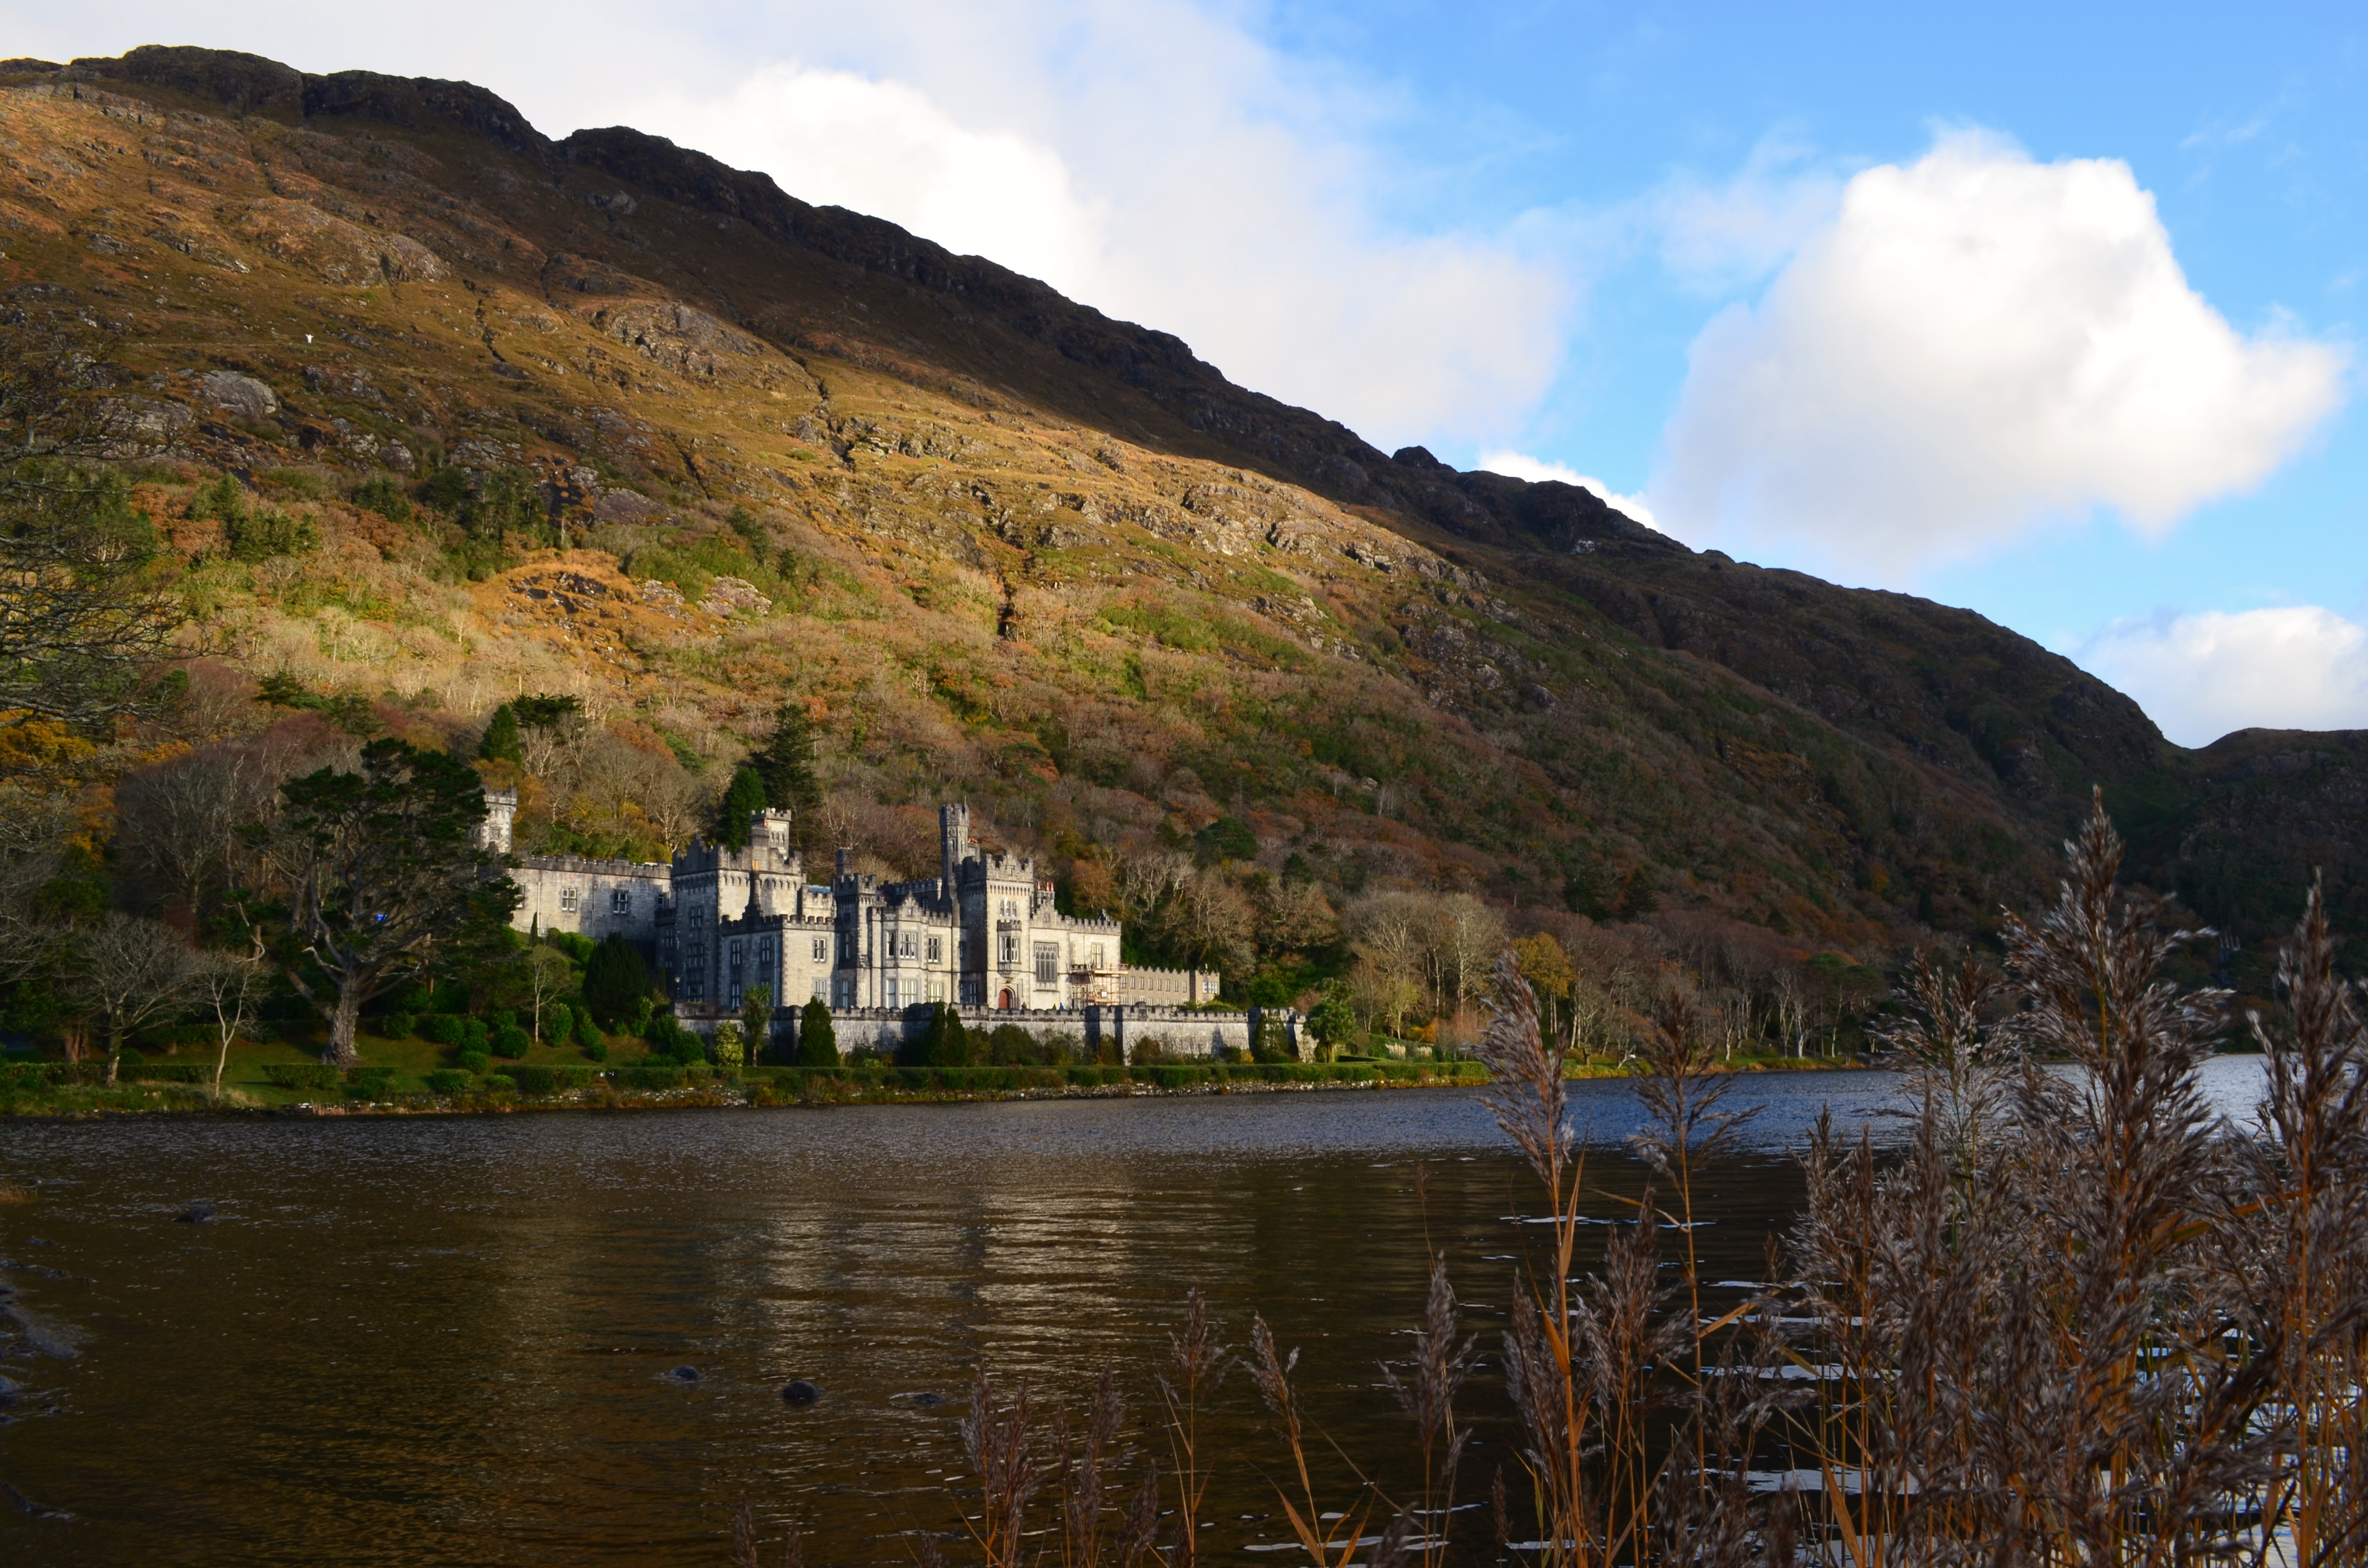 Sun catching the turrets of Kylemore Abbey across Lough Pollacapall